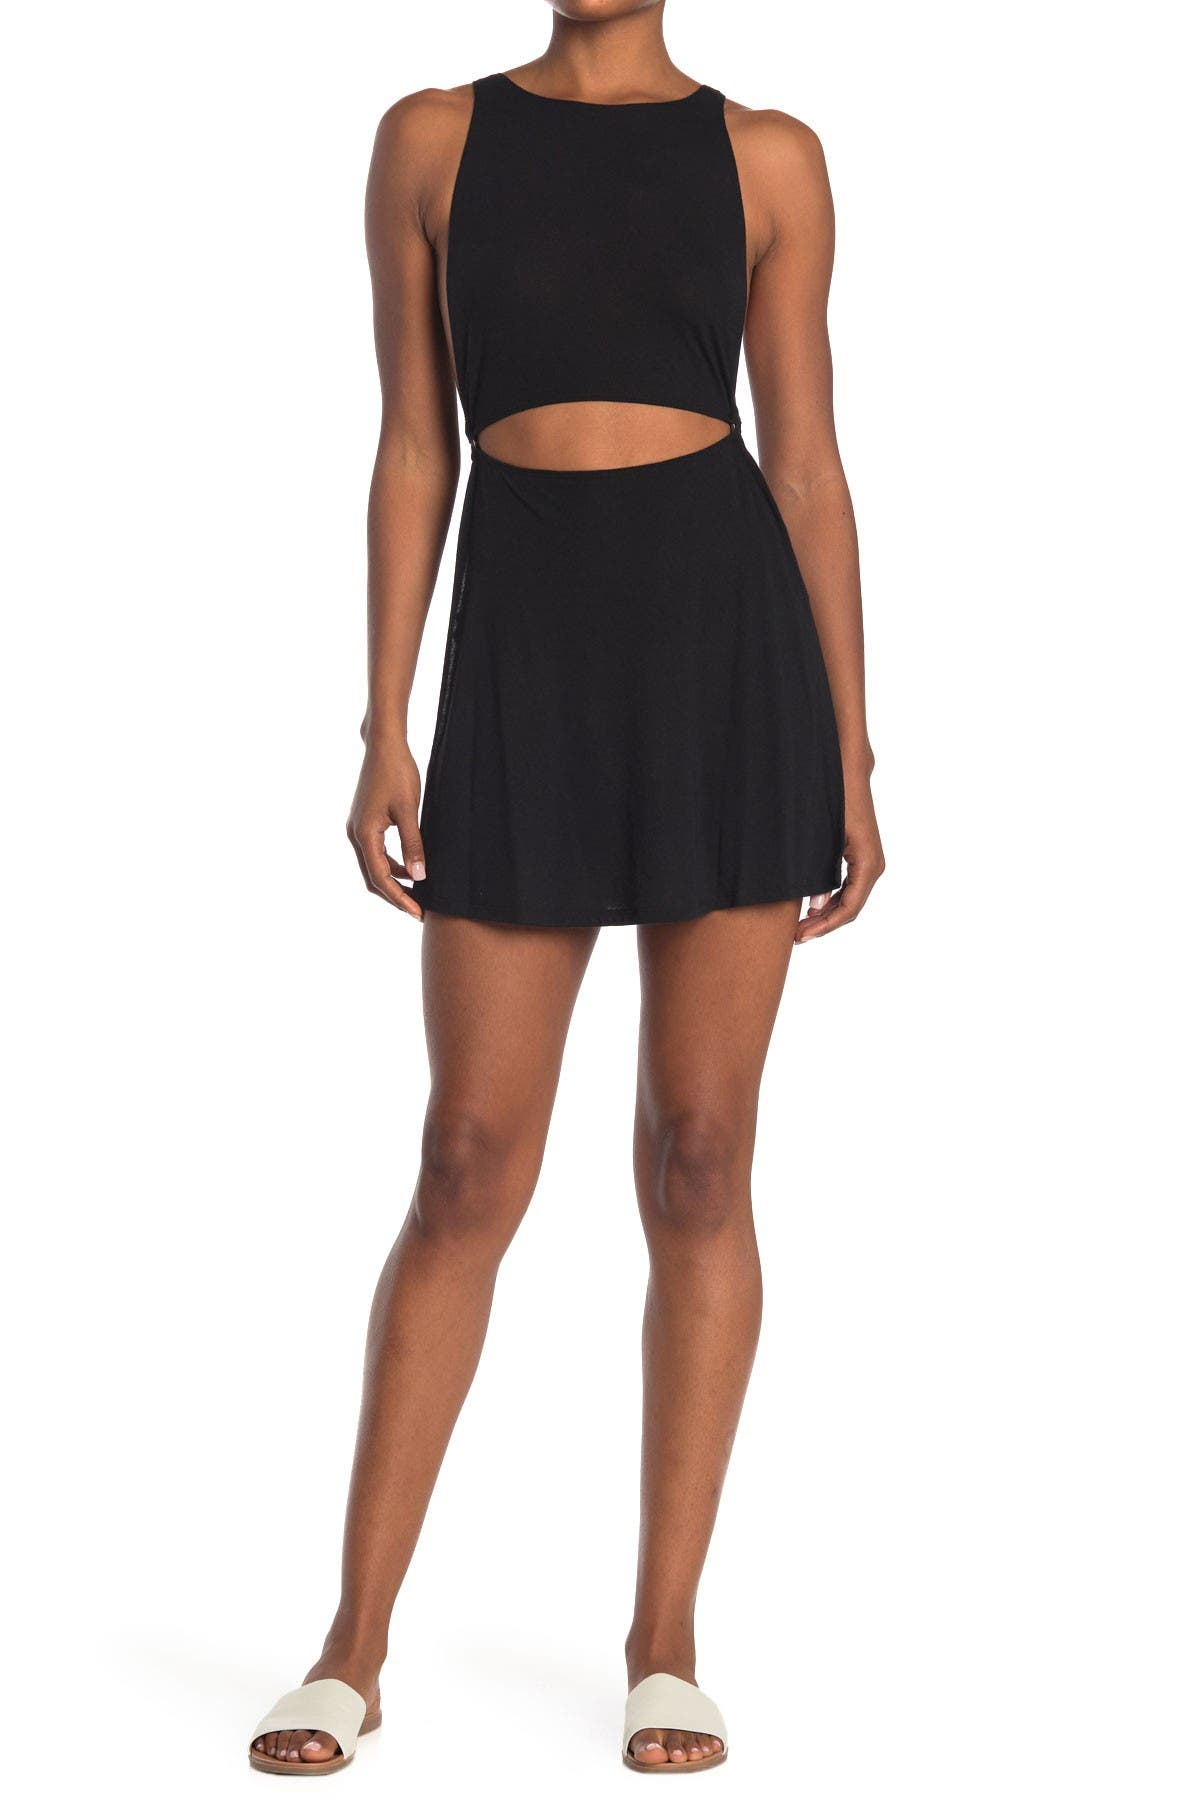 Image of The Bikini Lab Cutout Ring Cover Up Dress